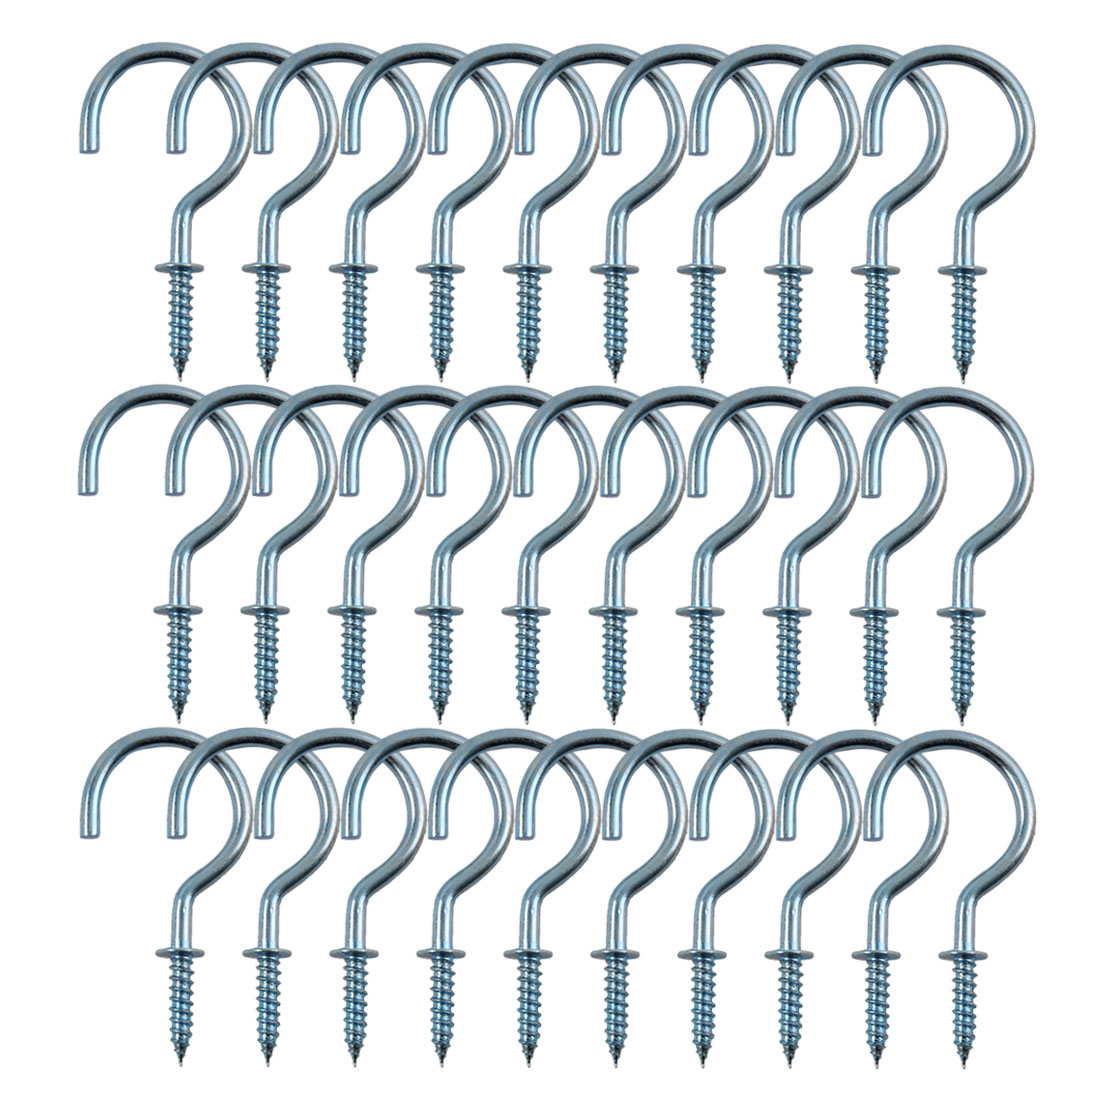 30pcs Cup Ceiling Hooks 1 Inch Zinc Plating Metal Screw for Home Office Cup